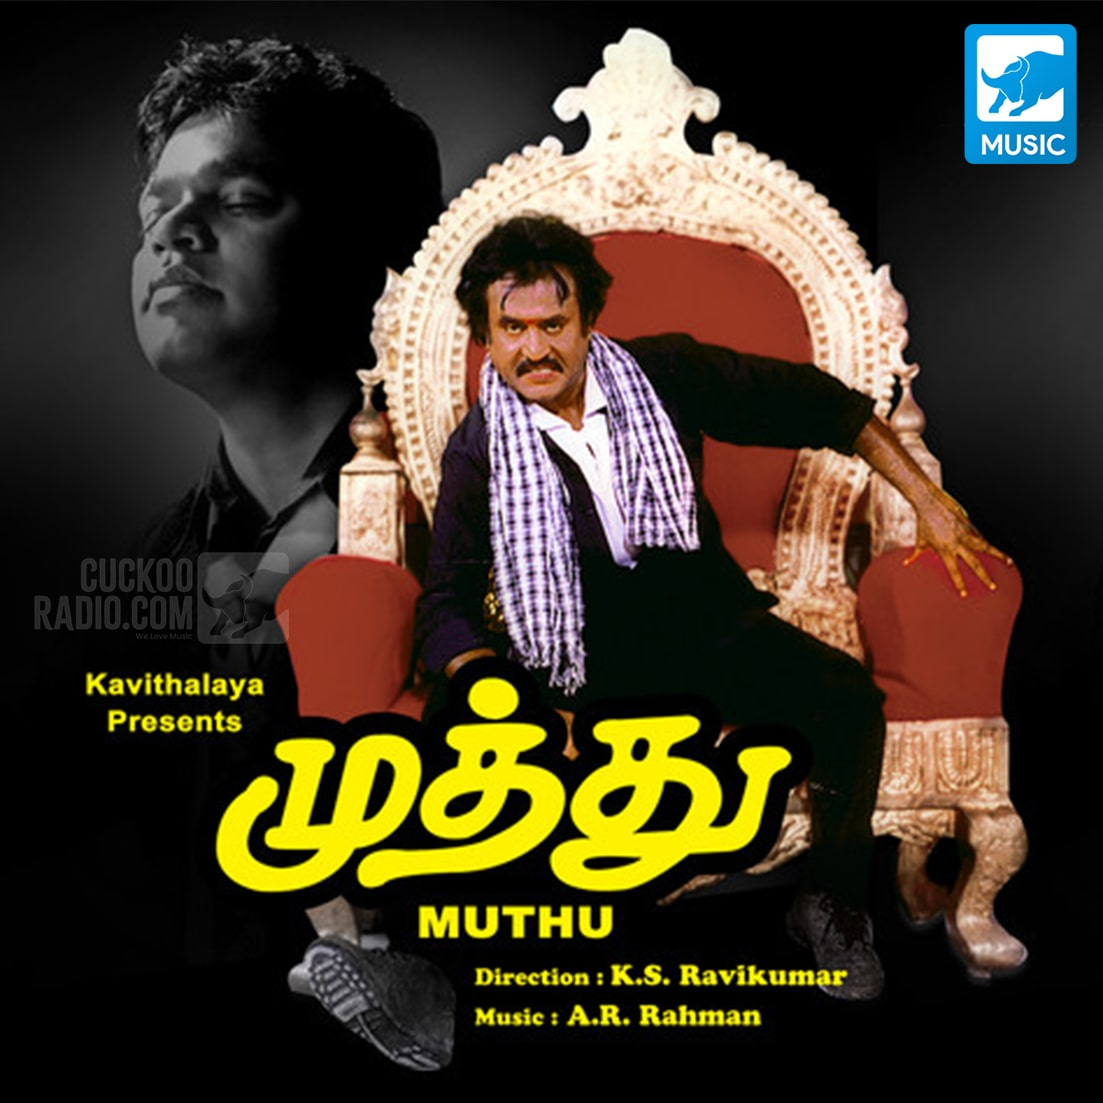 Muthu Tamil Super Star Rajinikandh Movie